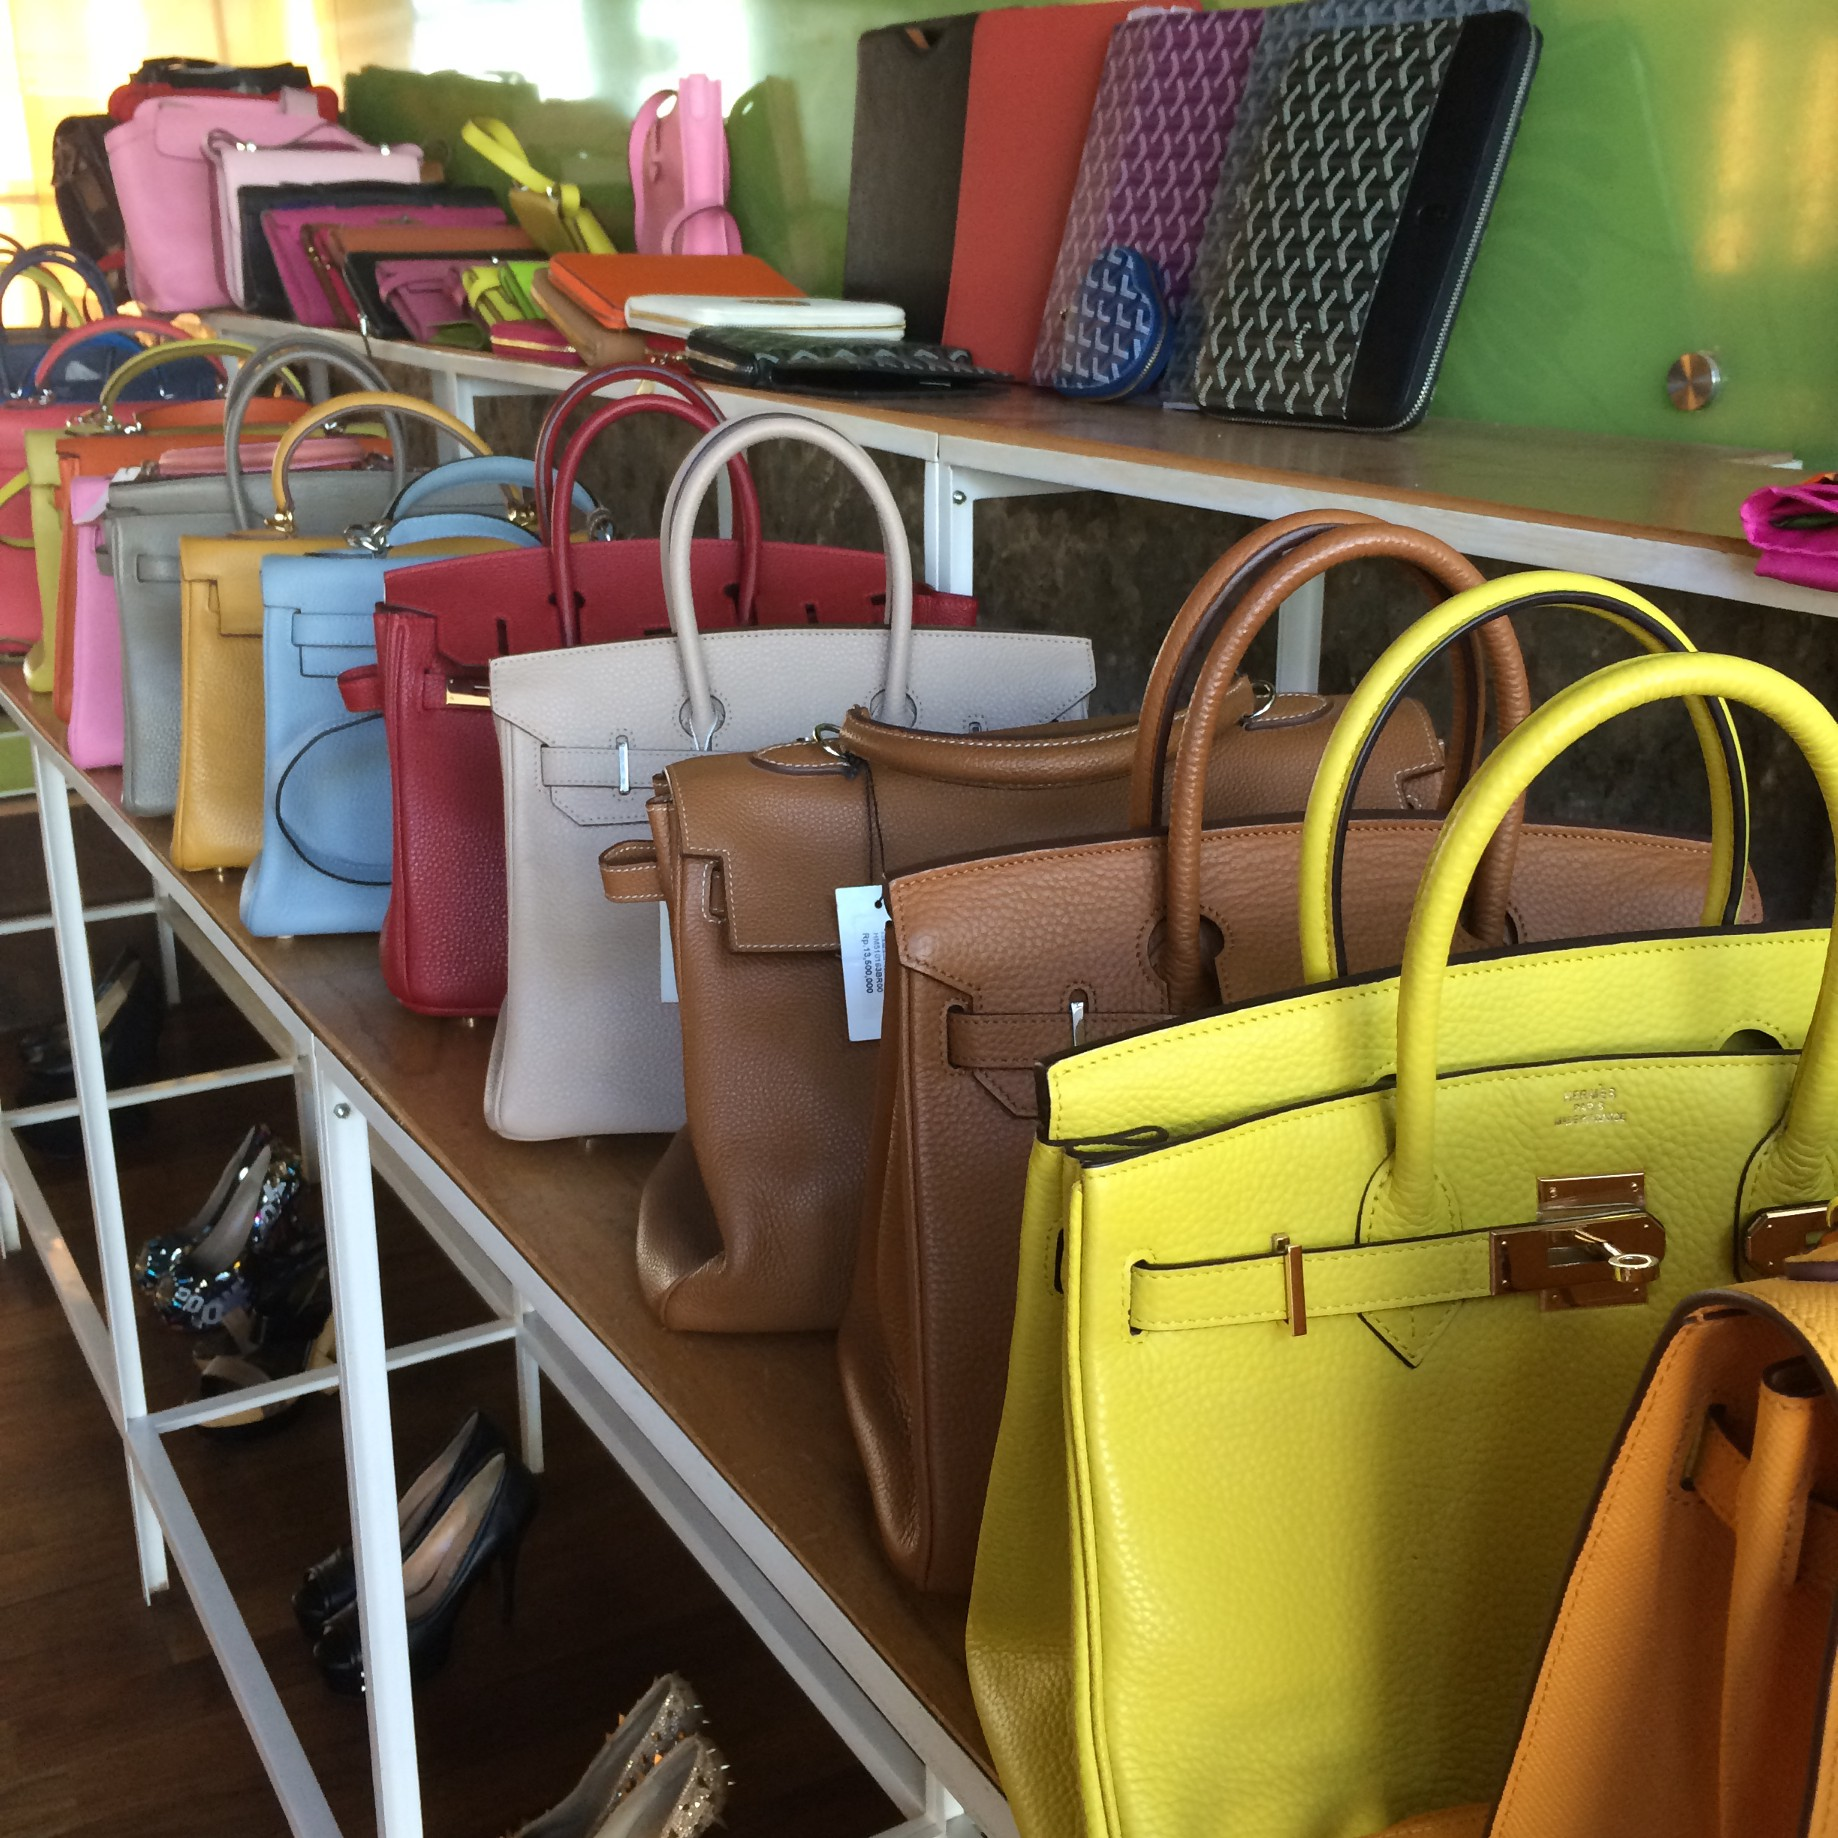 8f56c6ddf87 The Truth About Counterfeit Luxury Handbags - Becca Risa Luna - Medium